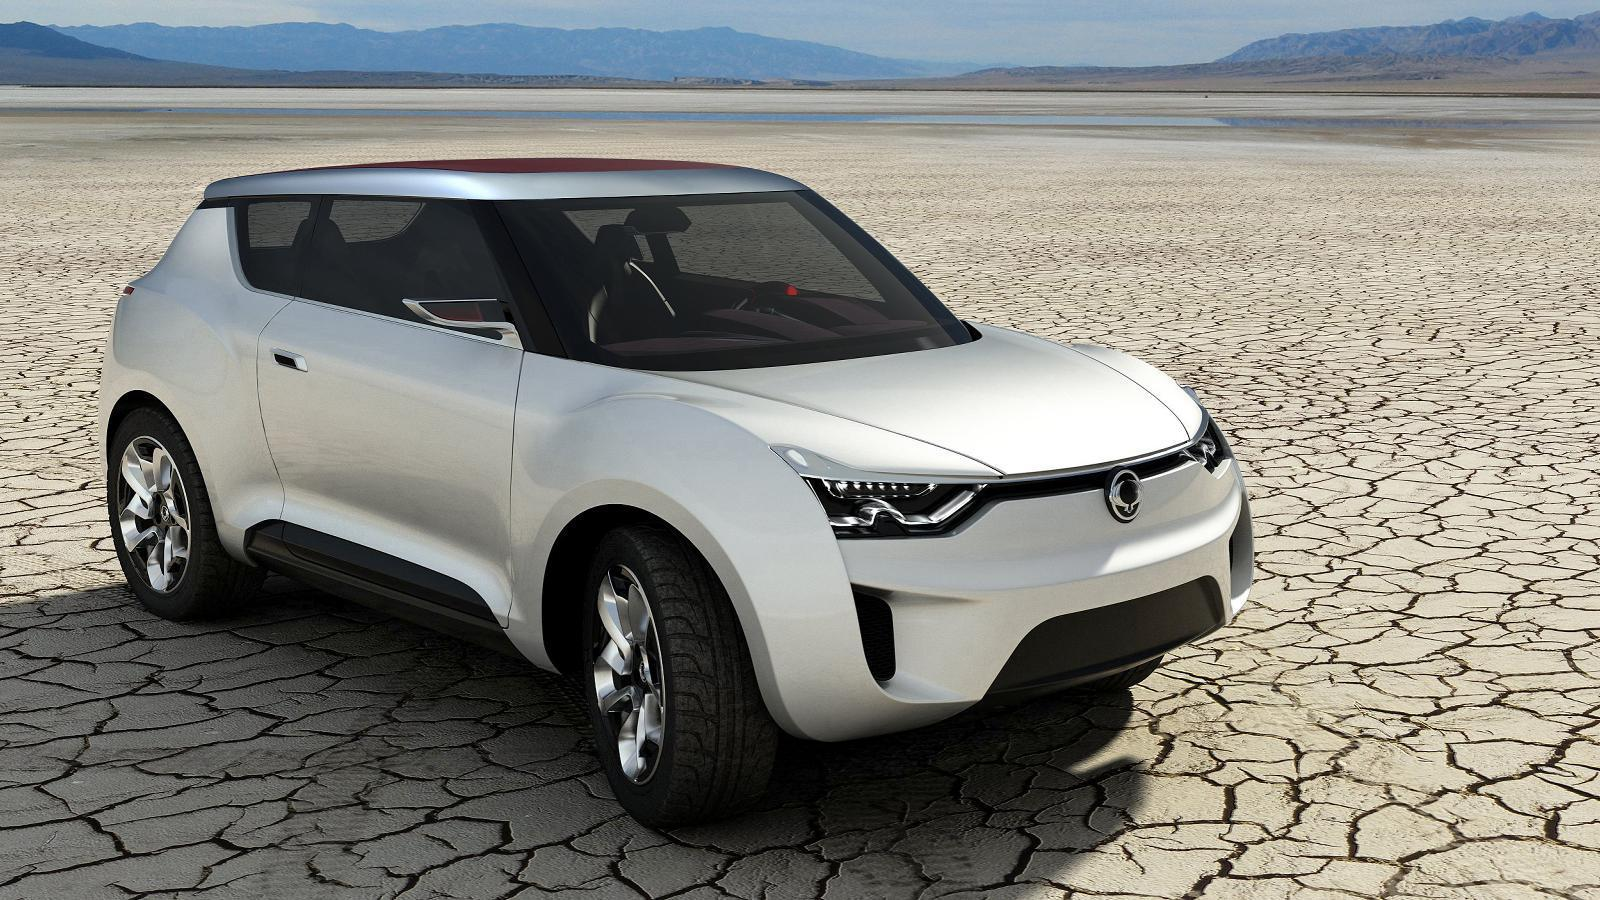 2019 SsangYong e XIV Concept photo - 1